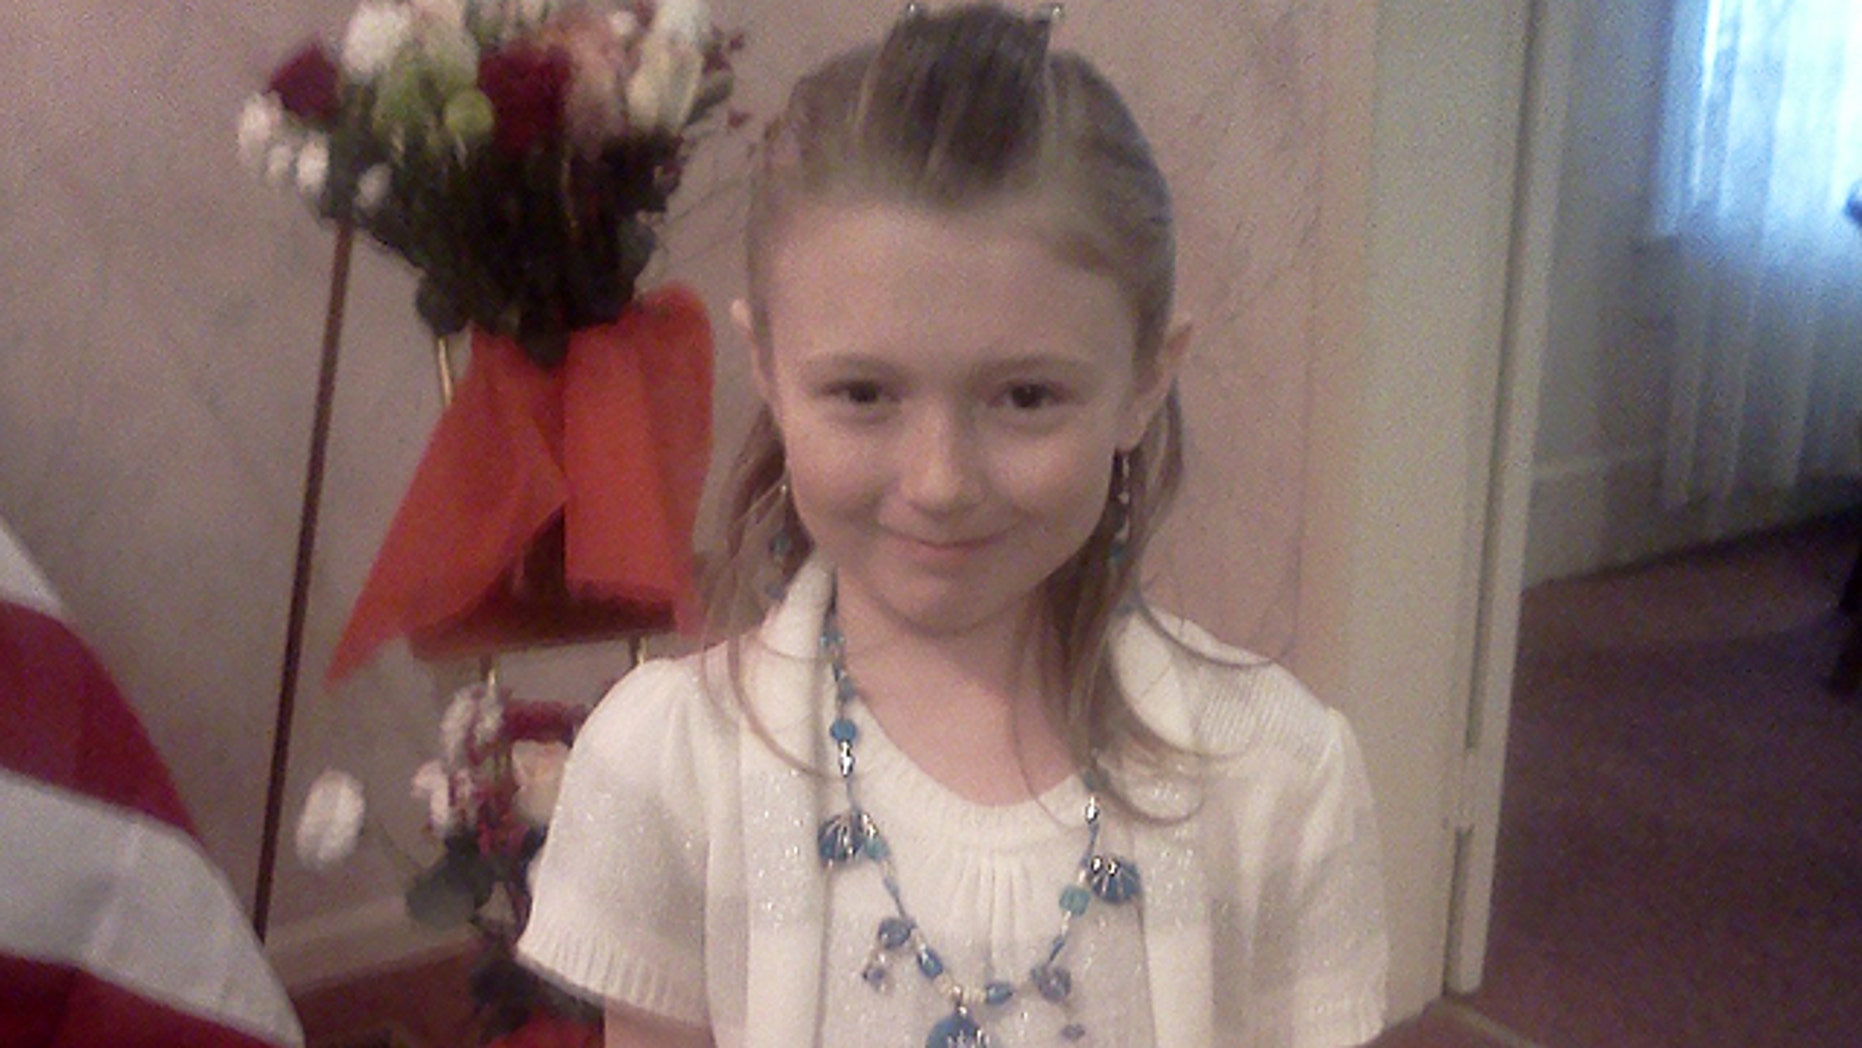 December 26, 2011: This photo provided by the Allen County Sheriff's Department shows Aliahna Lemmon.